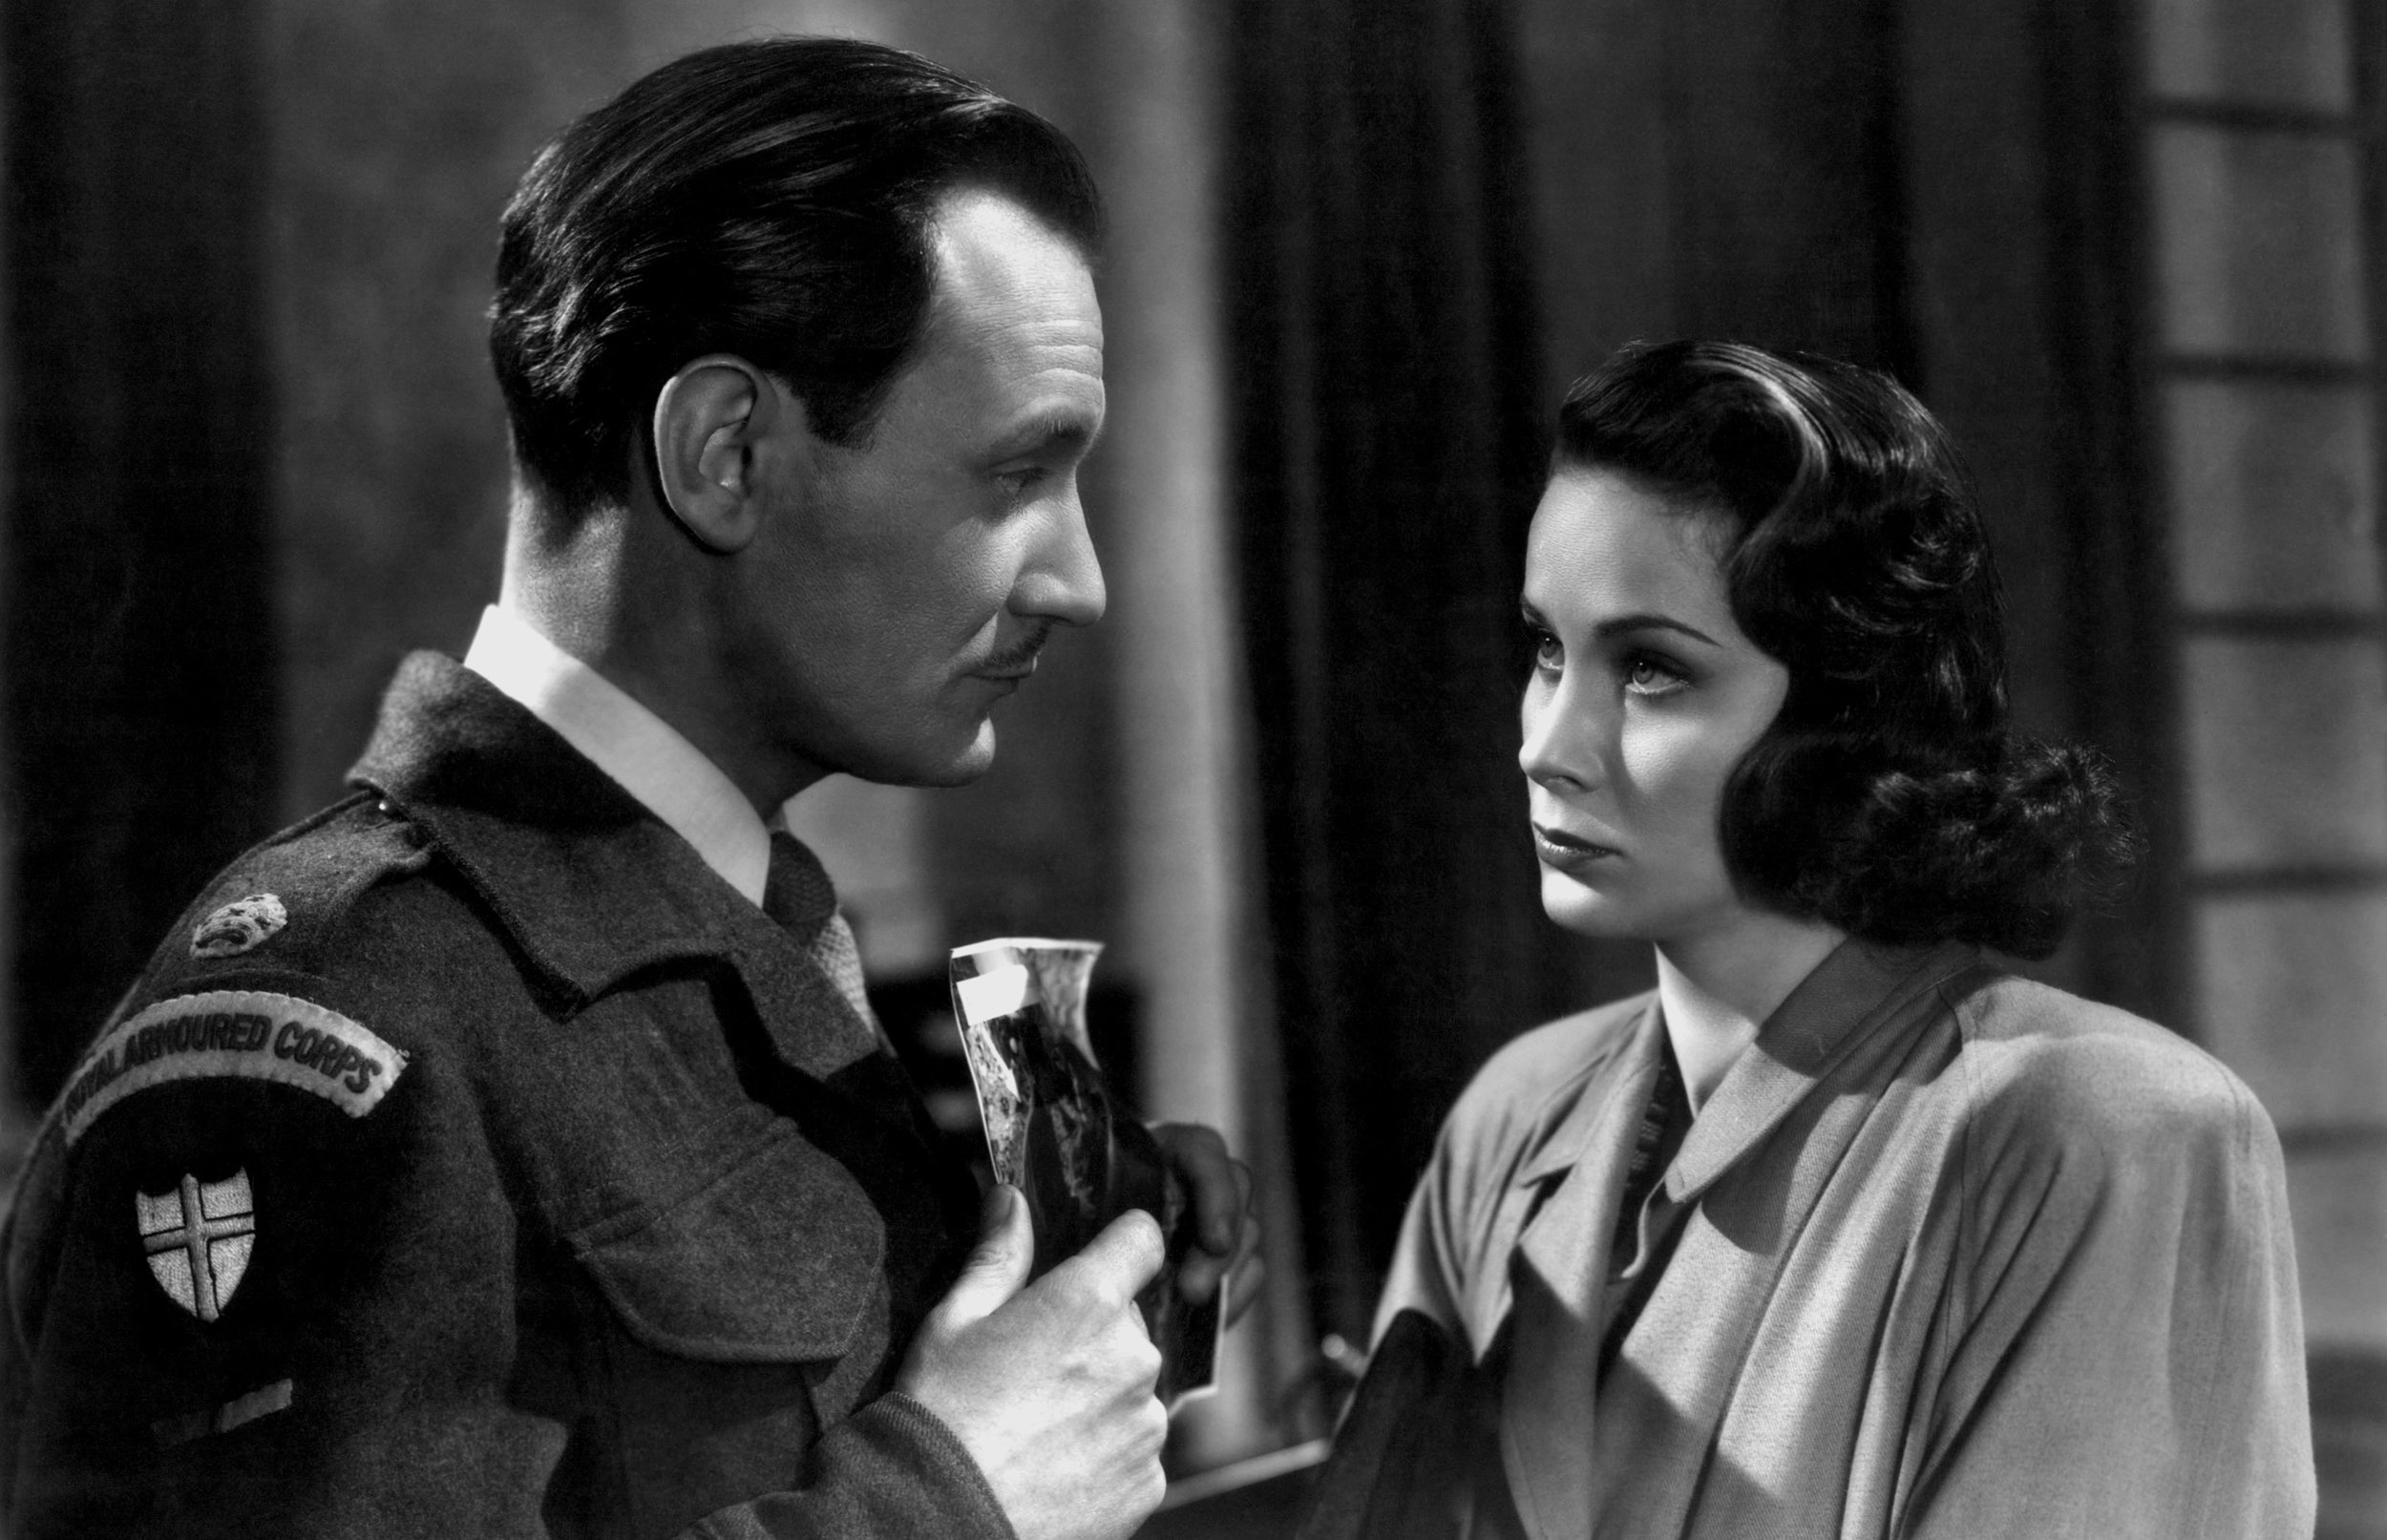 Trevor Howard as Major Callaway and Alida Valli as Anna Schmidt.